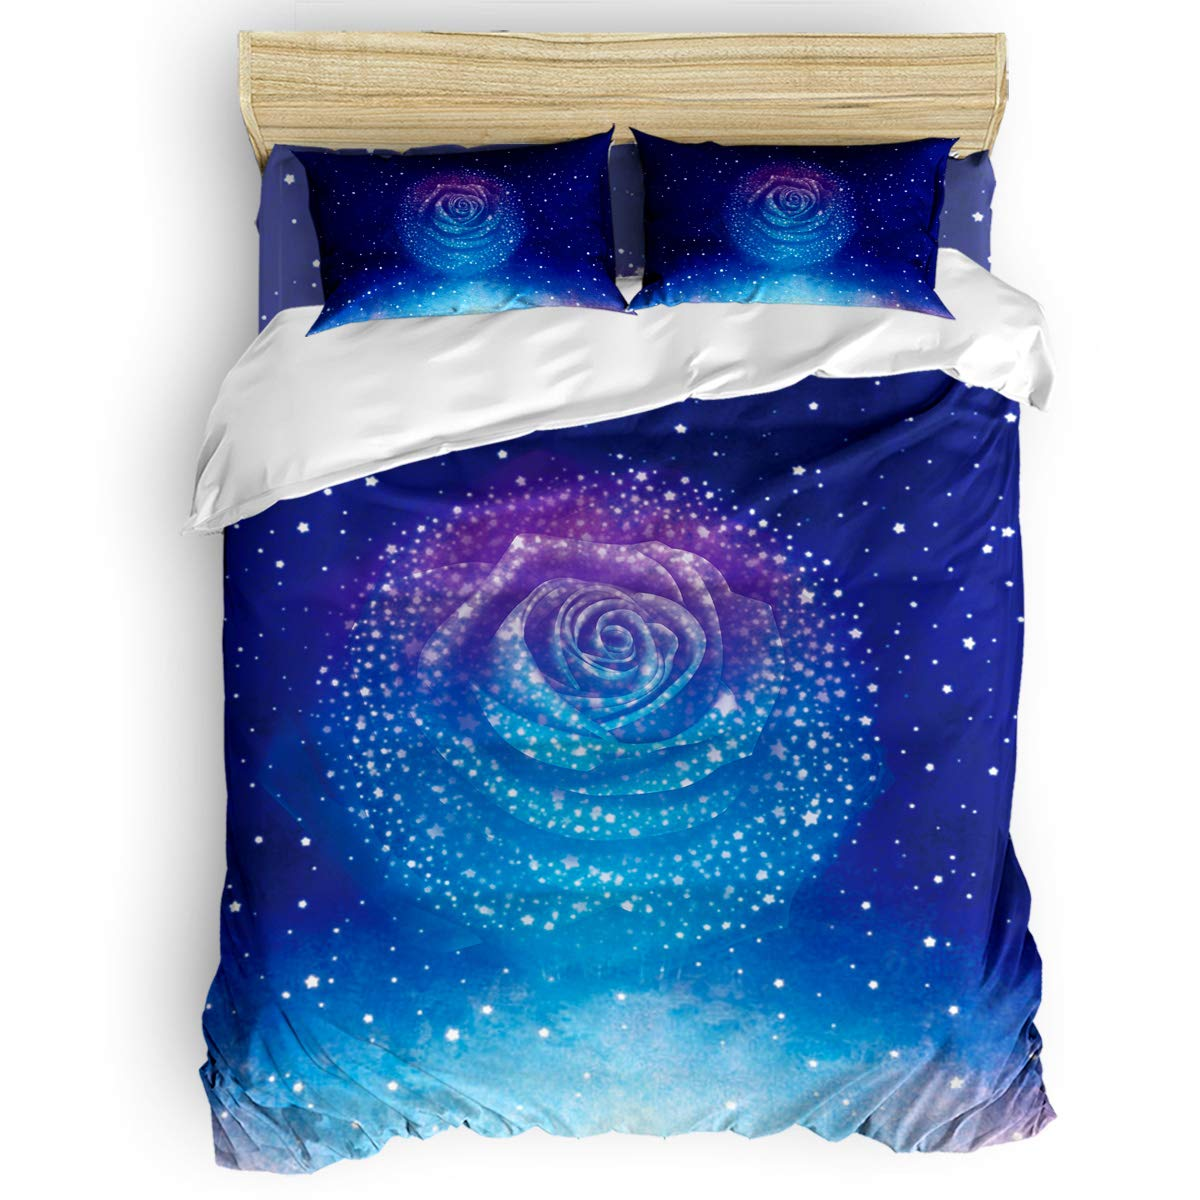 Queen Area Microfiber 4pcs Bedding Duvet Cover Set Twin,Blue Stary Sky with Rose Flower Soft and Breathable with Zipper Closure & Corner Ties